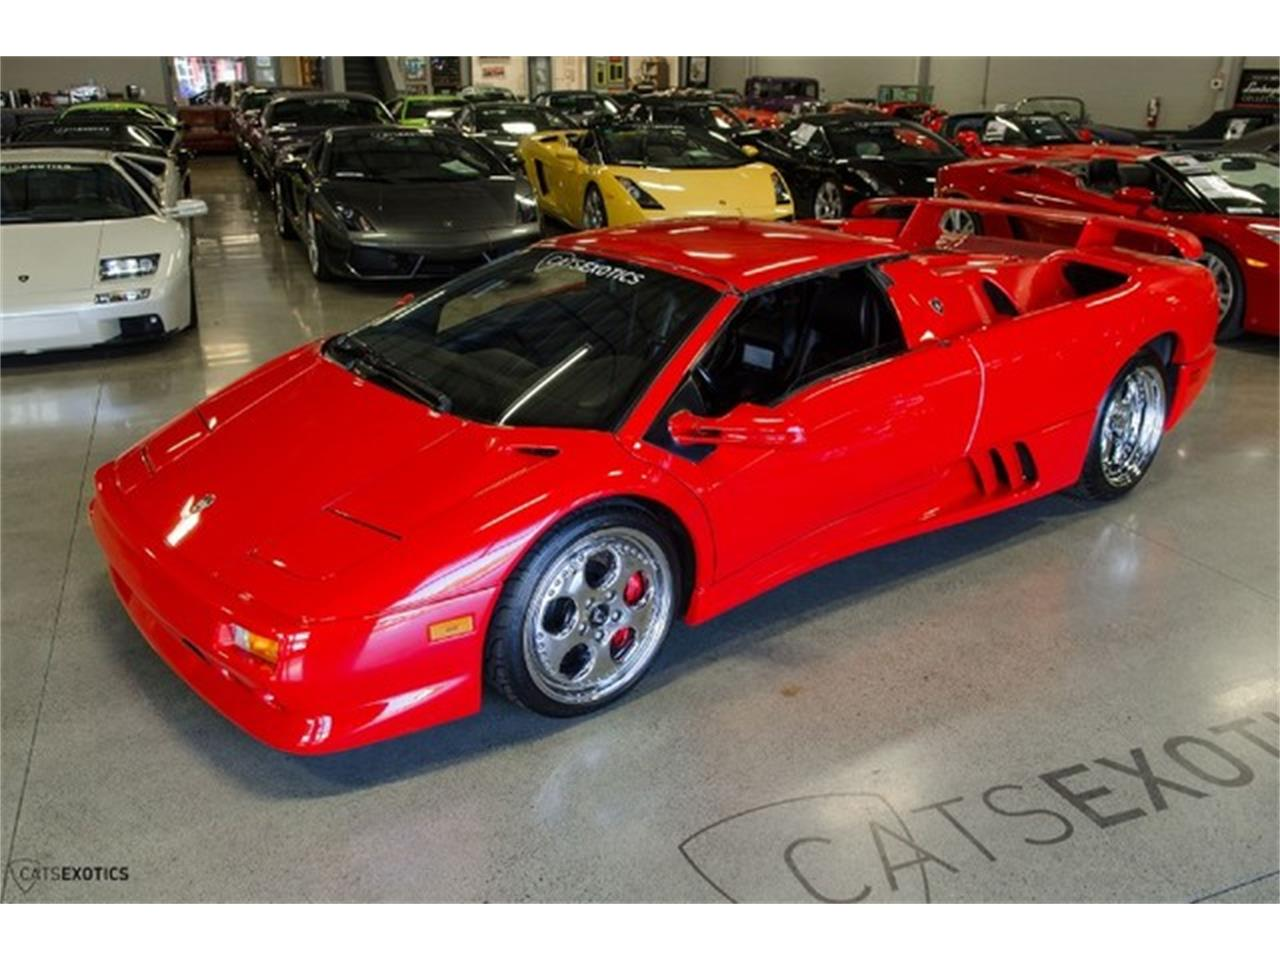 Large Picture of 1998 Diablo located in Seattle Washington Auction Vehicle Offered by Cats Exotics - HZIS